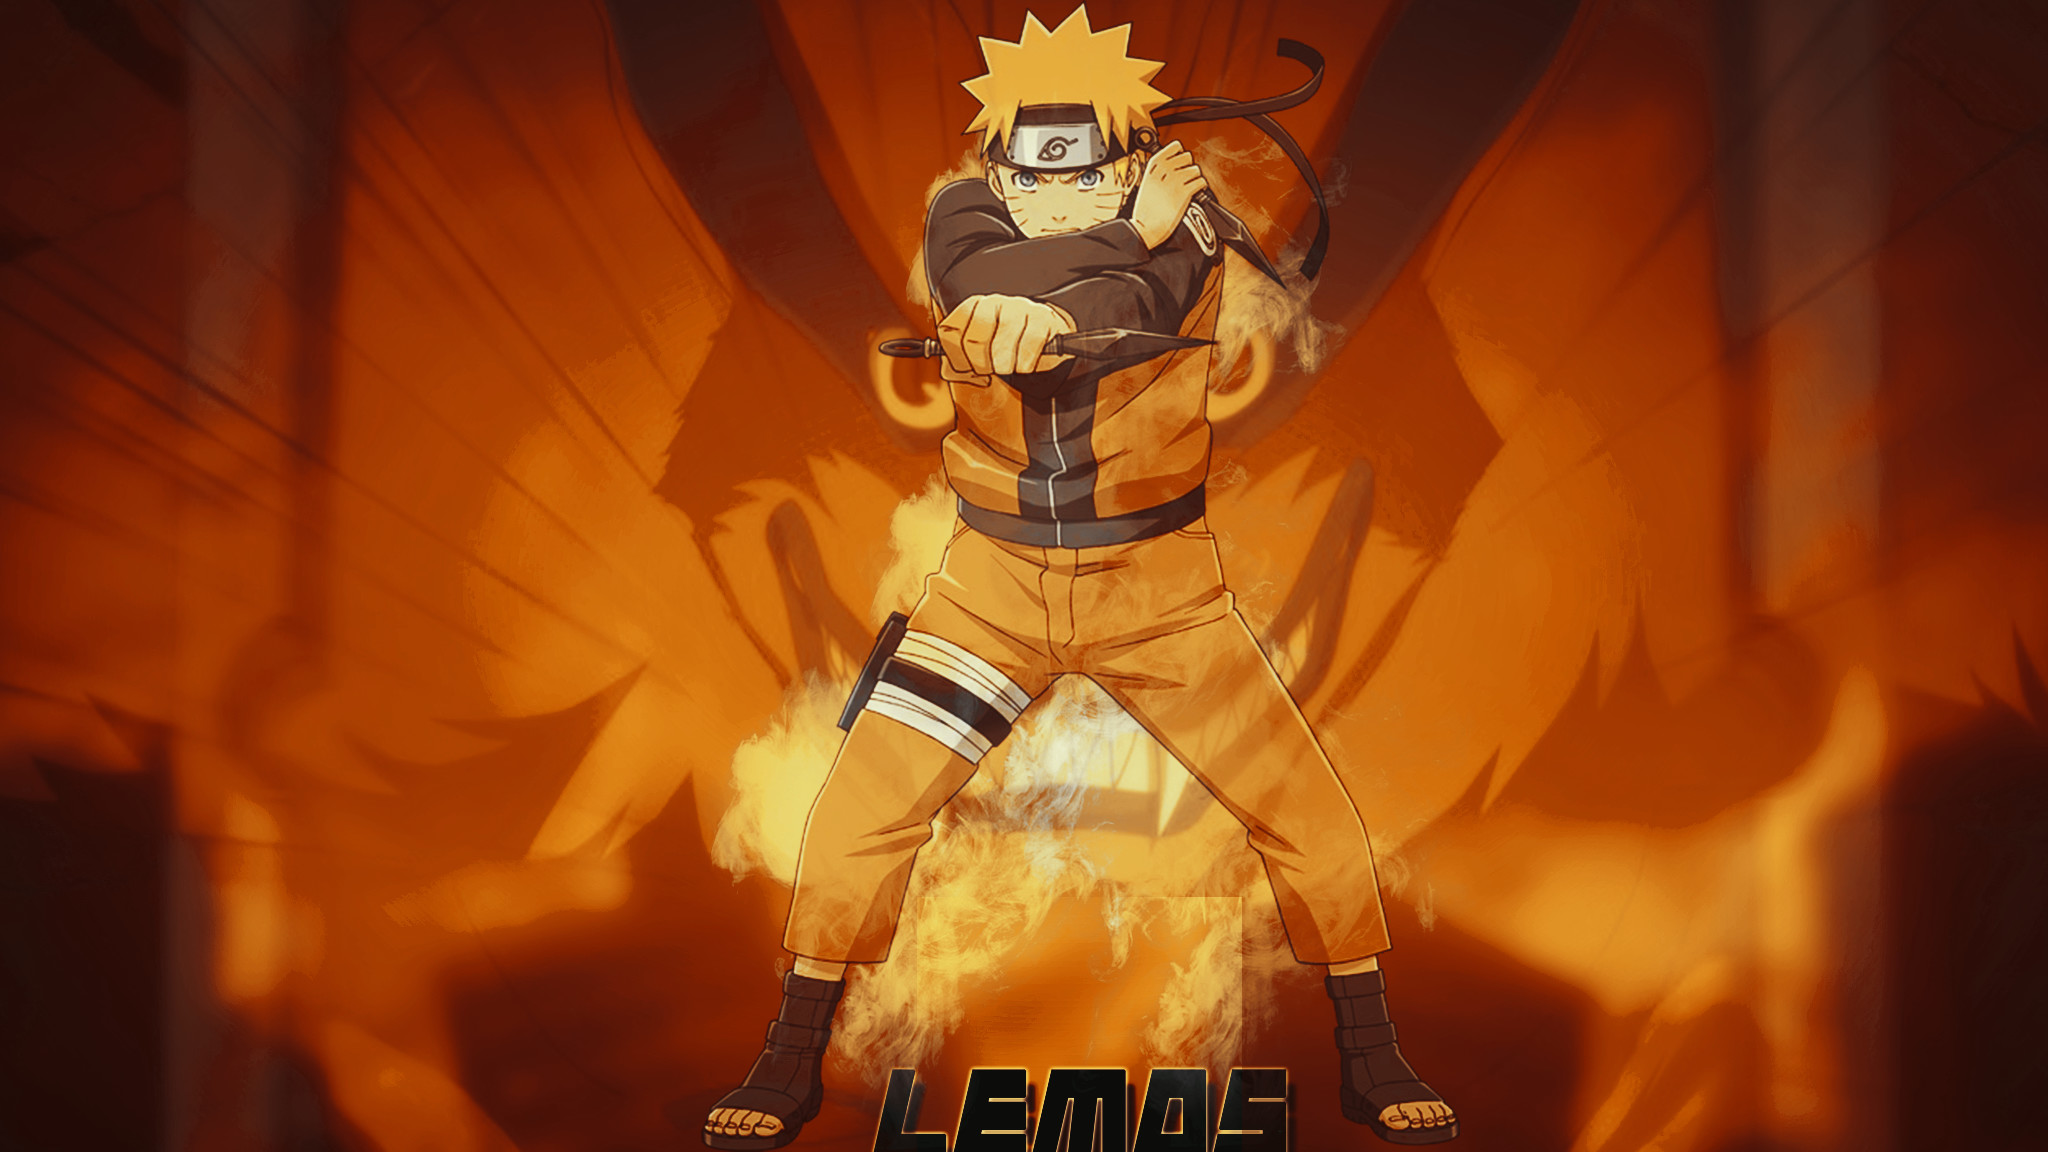 Naruto Nine Tails Wallpaper (68+ Images